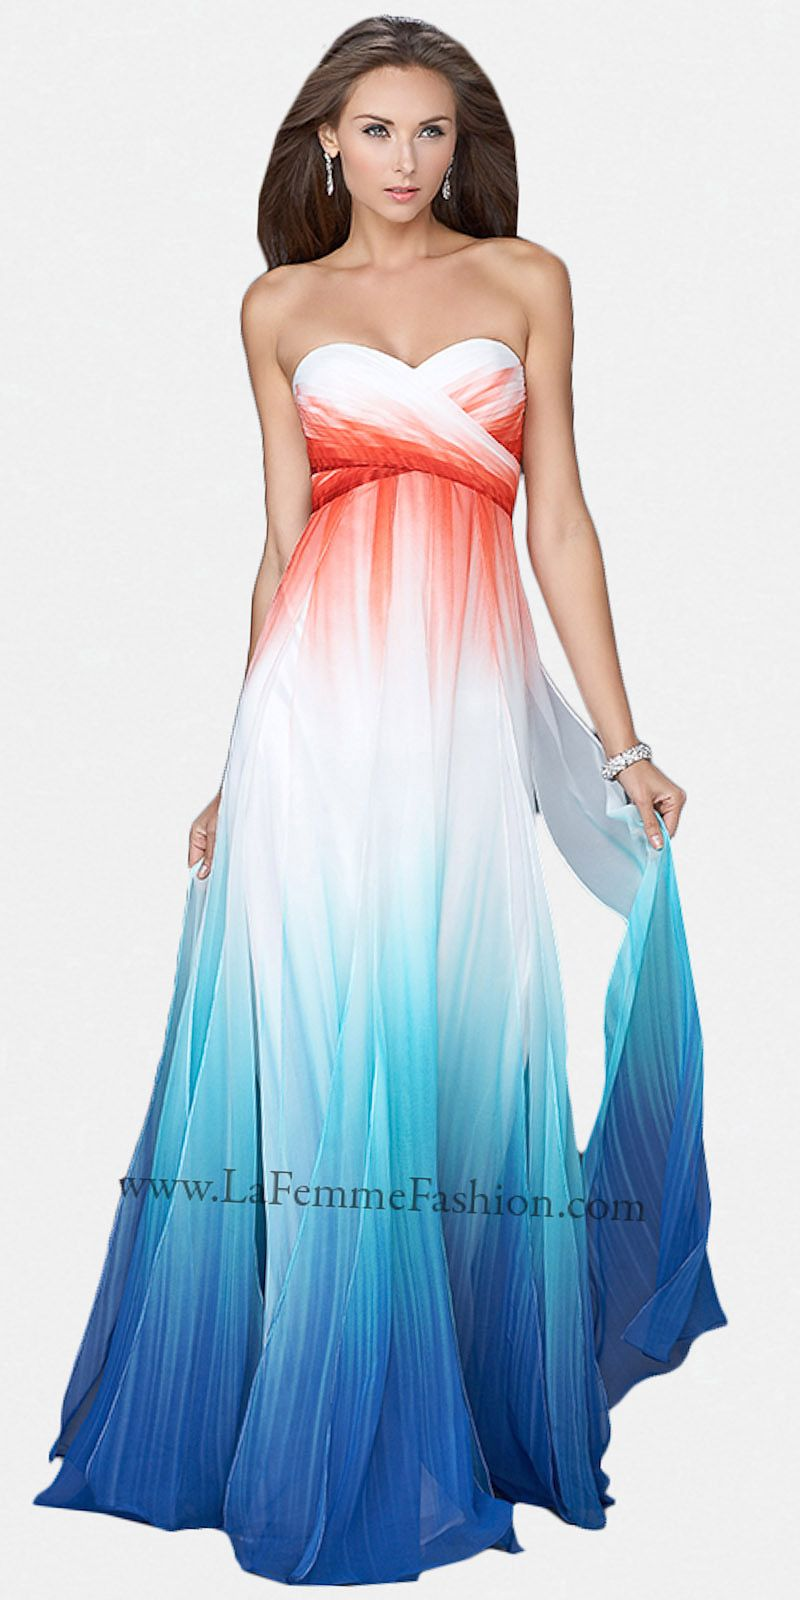 3450f9931cb Ice Storm Fade Prom Dresses by La Femme at eDressMe this ones really cool  for fire